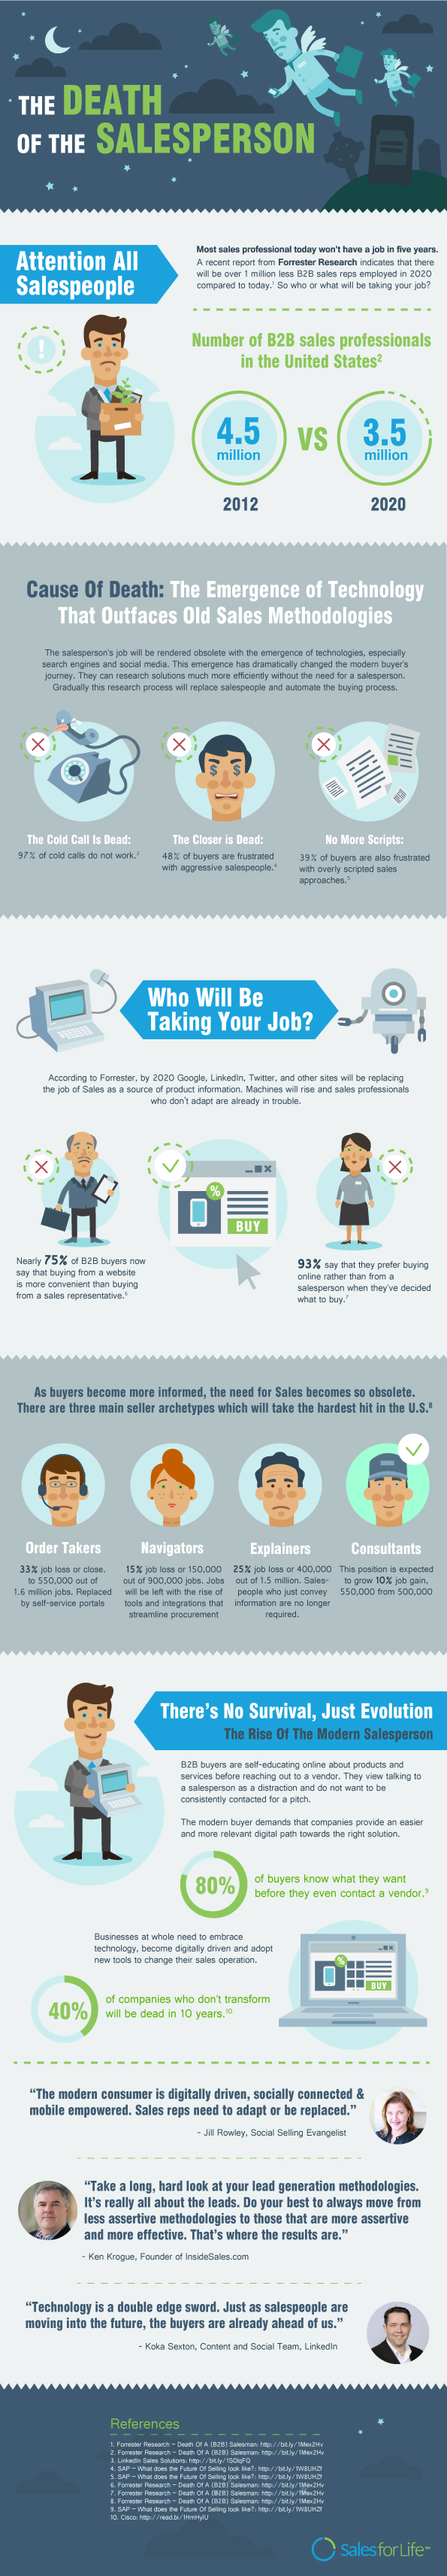 The Death Of The Salesperson Social Selling Infographic